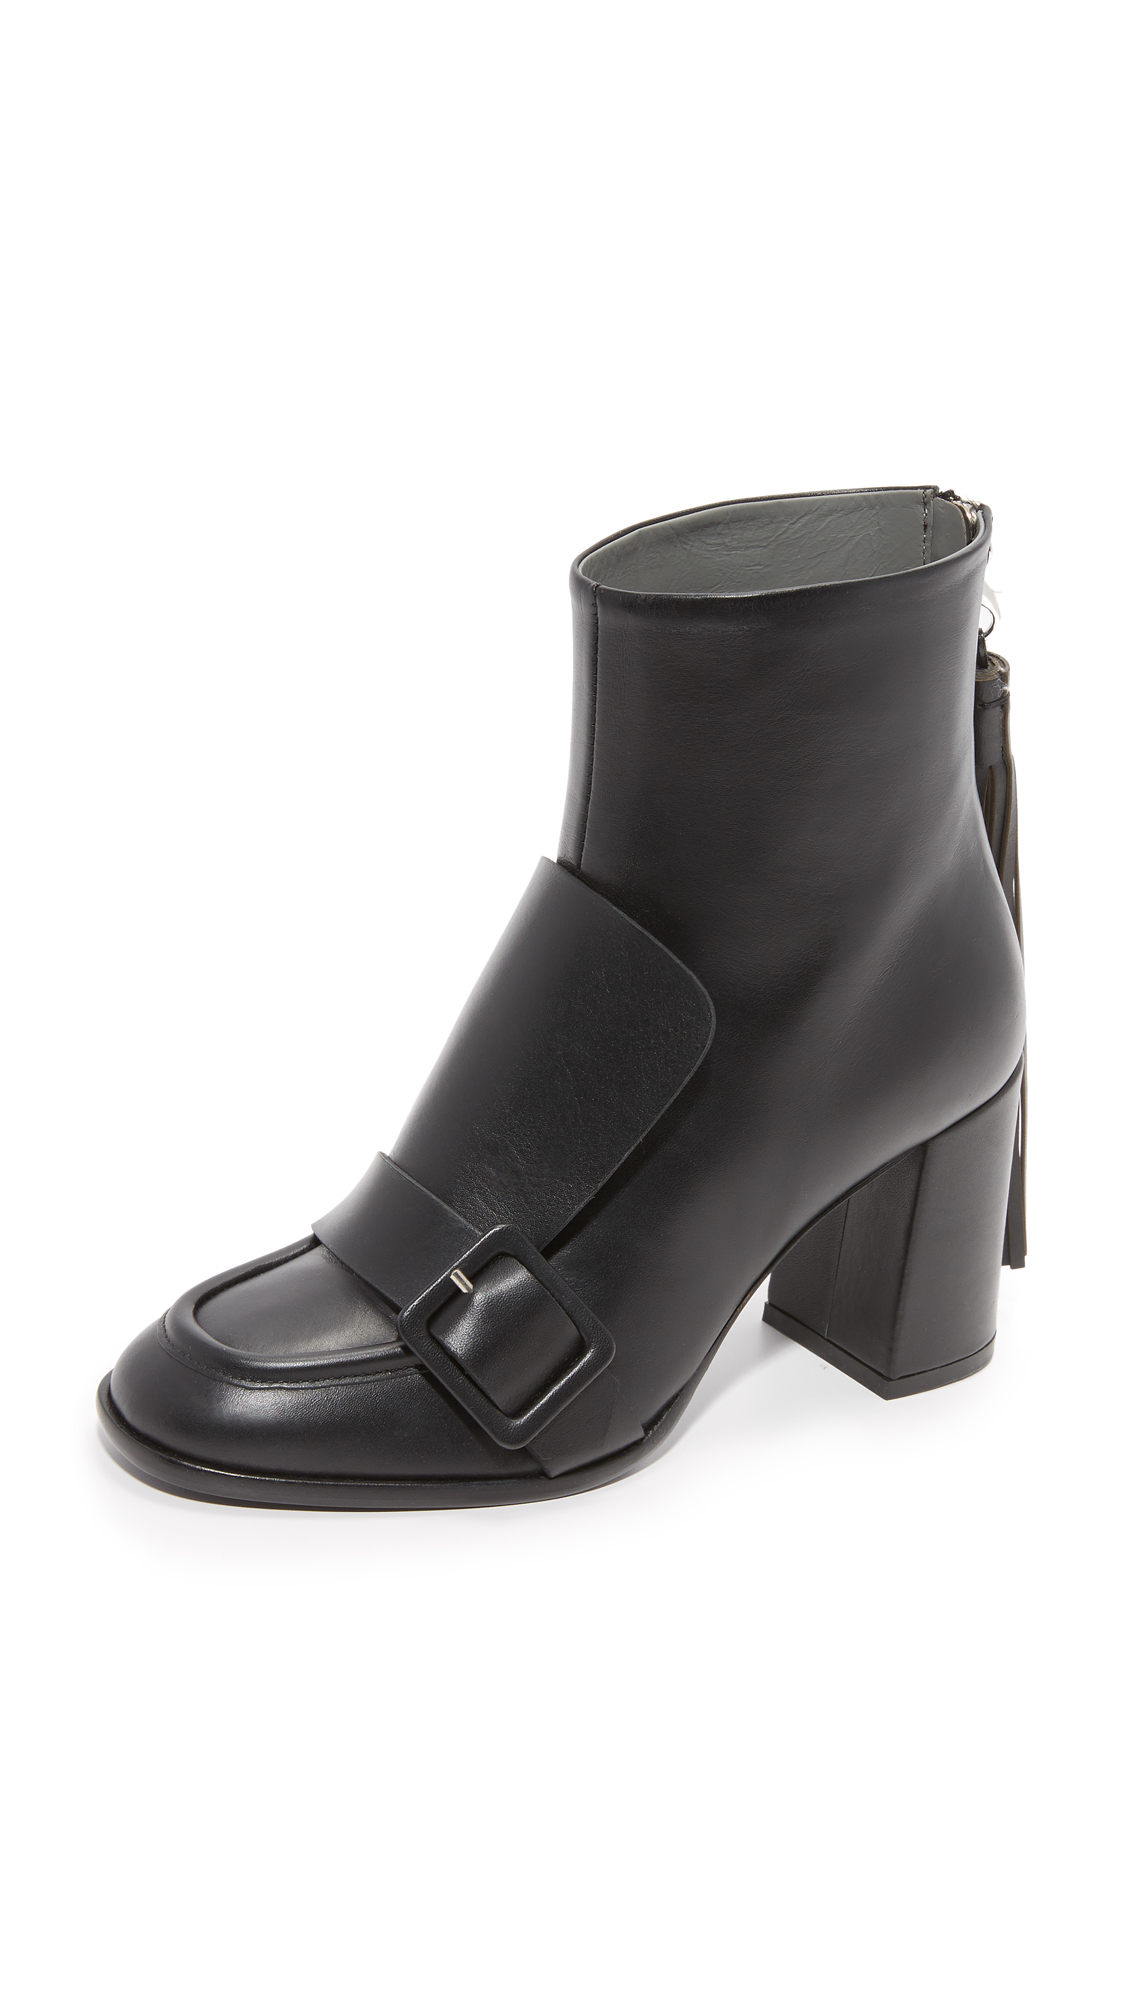 A buckle and an overlay panel add a loafer feel to these eclectic MSGM booties. Long tassel and lobster claw clasp at the hidden back zip. Chunky covered heel and leather sole. Leather: Calfskin. Made in